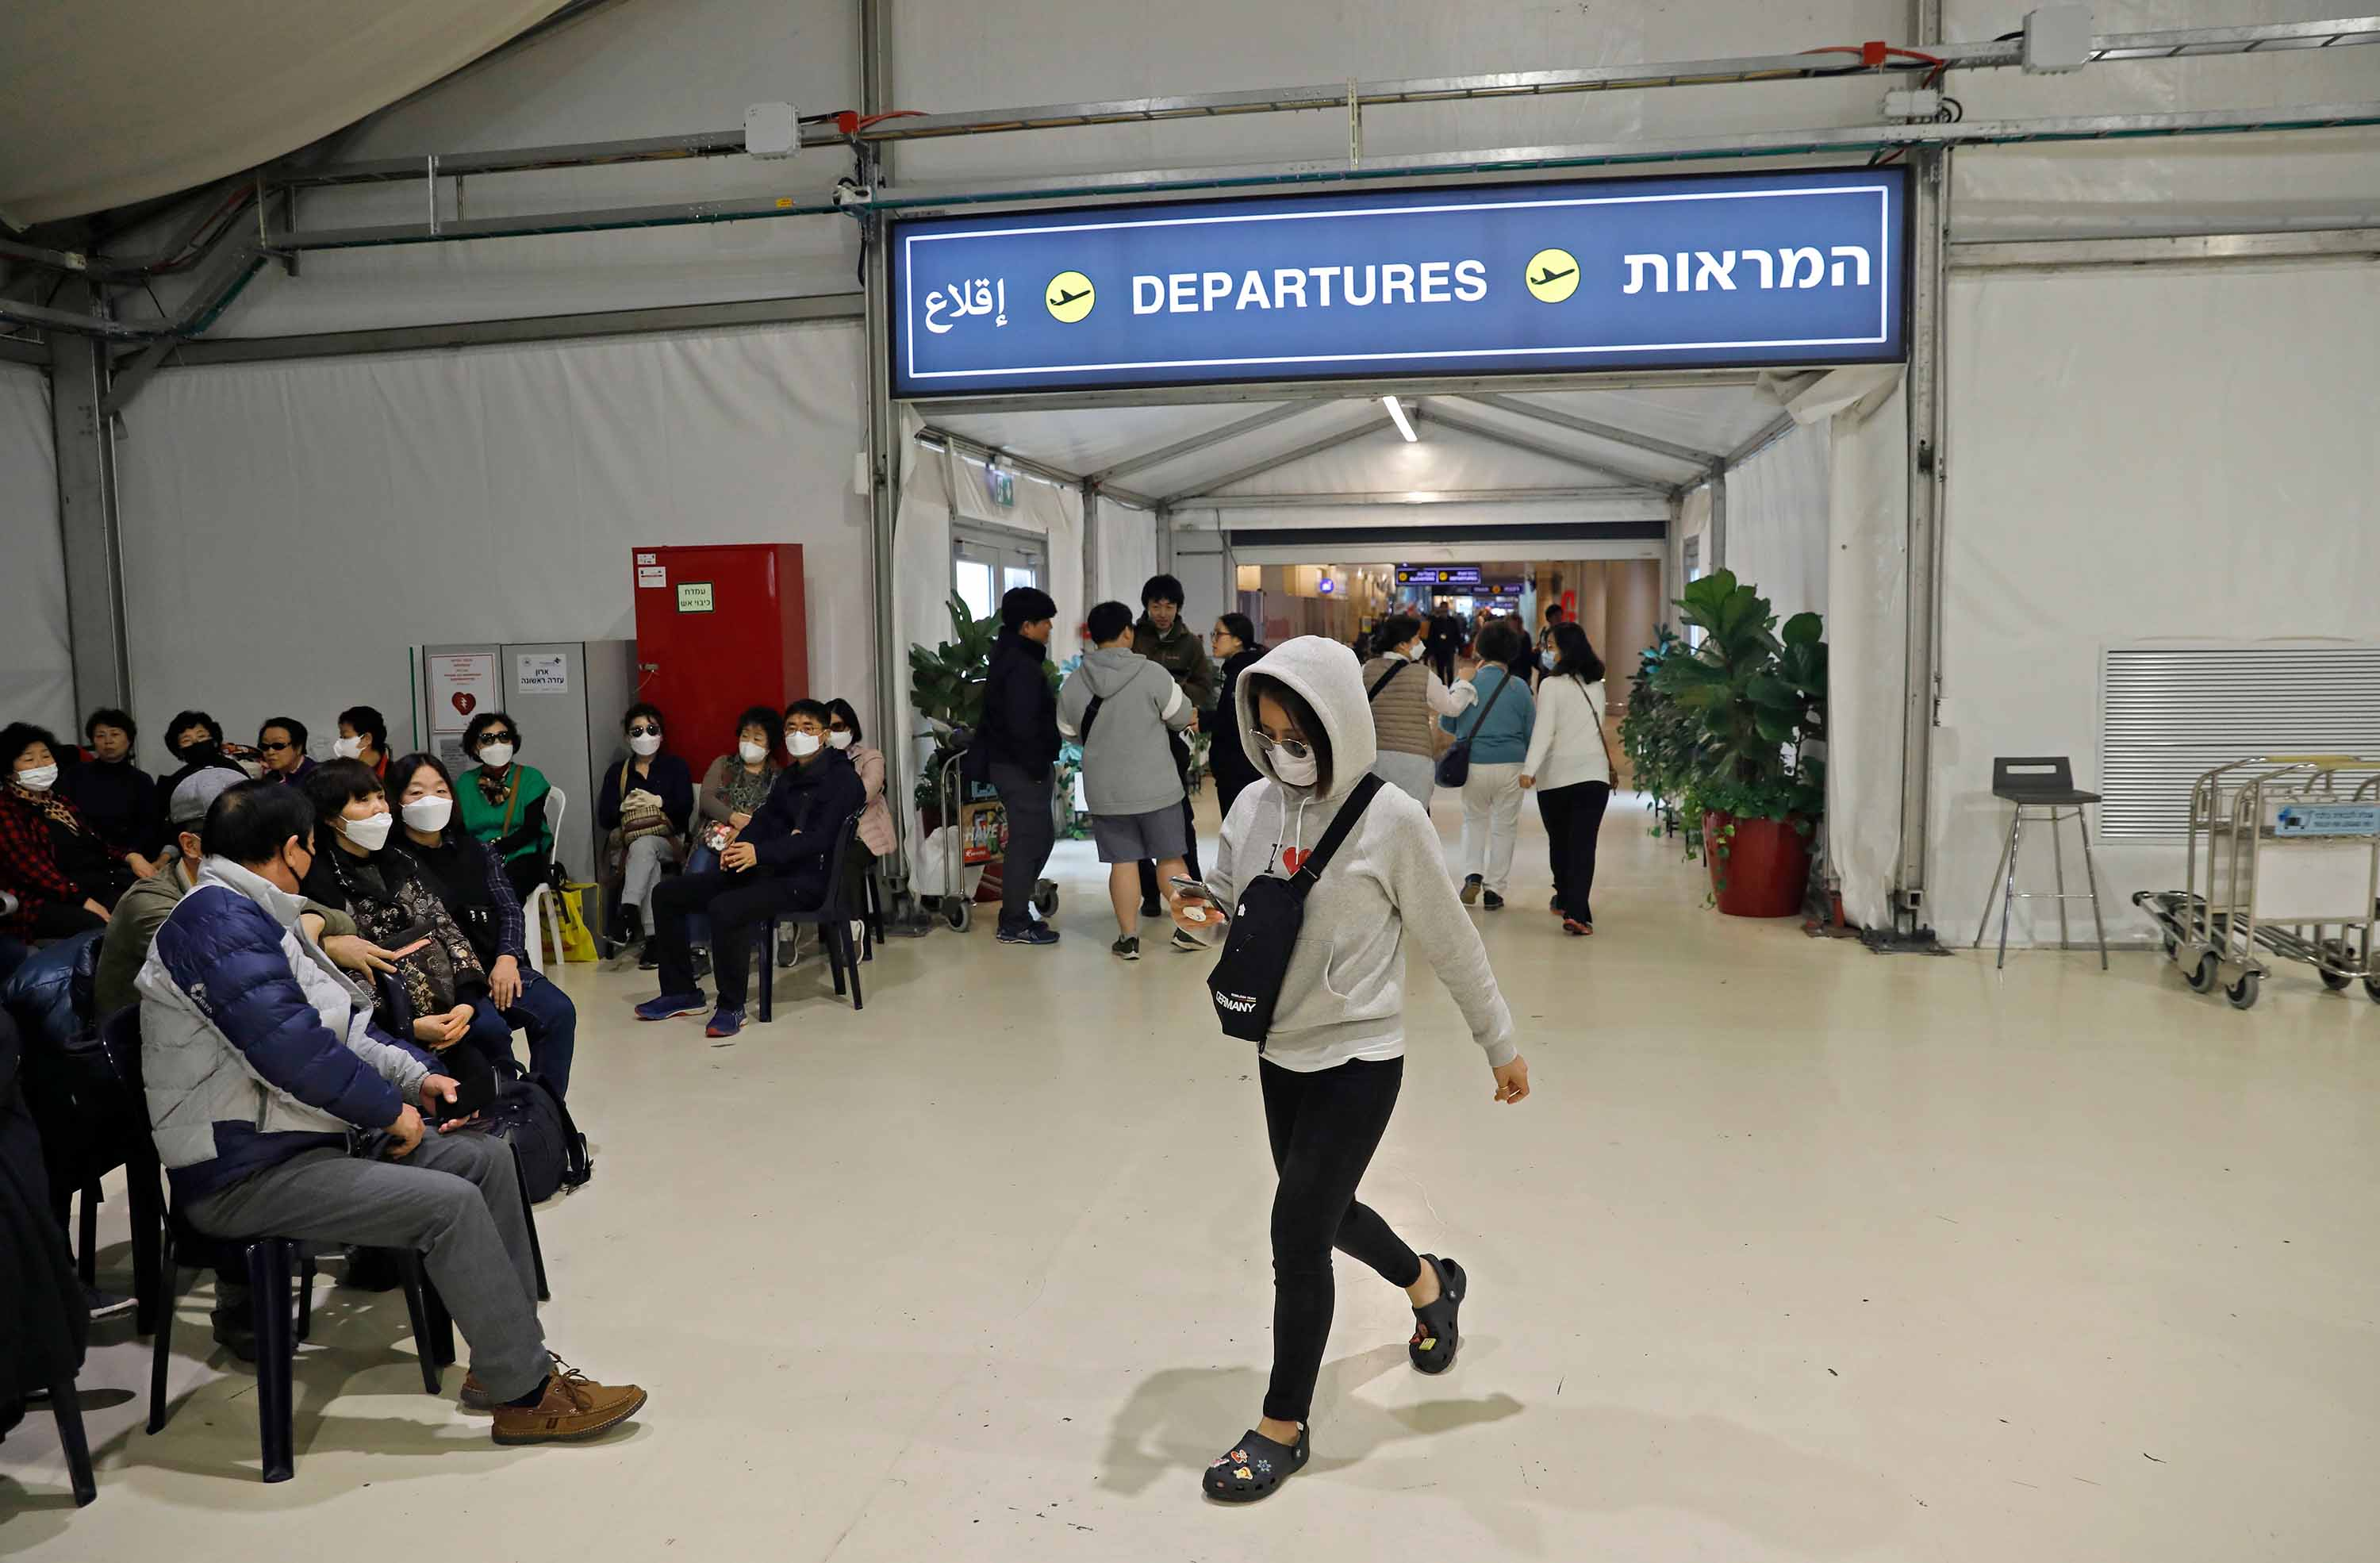 South Korean tourists leaving Israel are pictured at a pavillon separated from the main terminal of Ben Gurion International Airport near Tel Aviv on Monday.